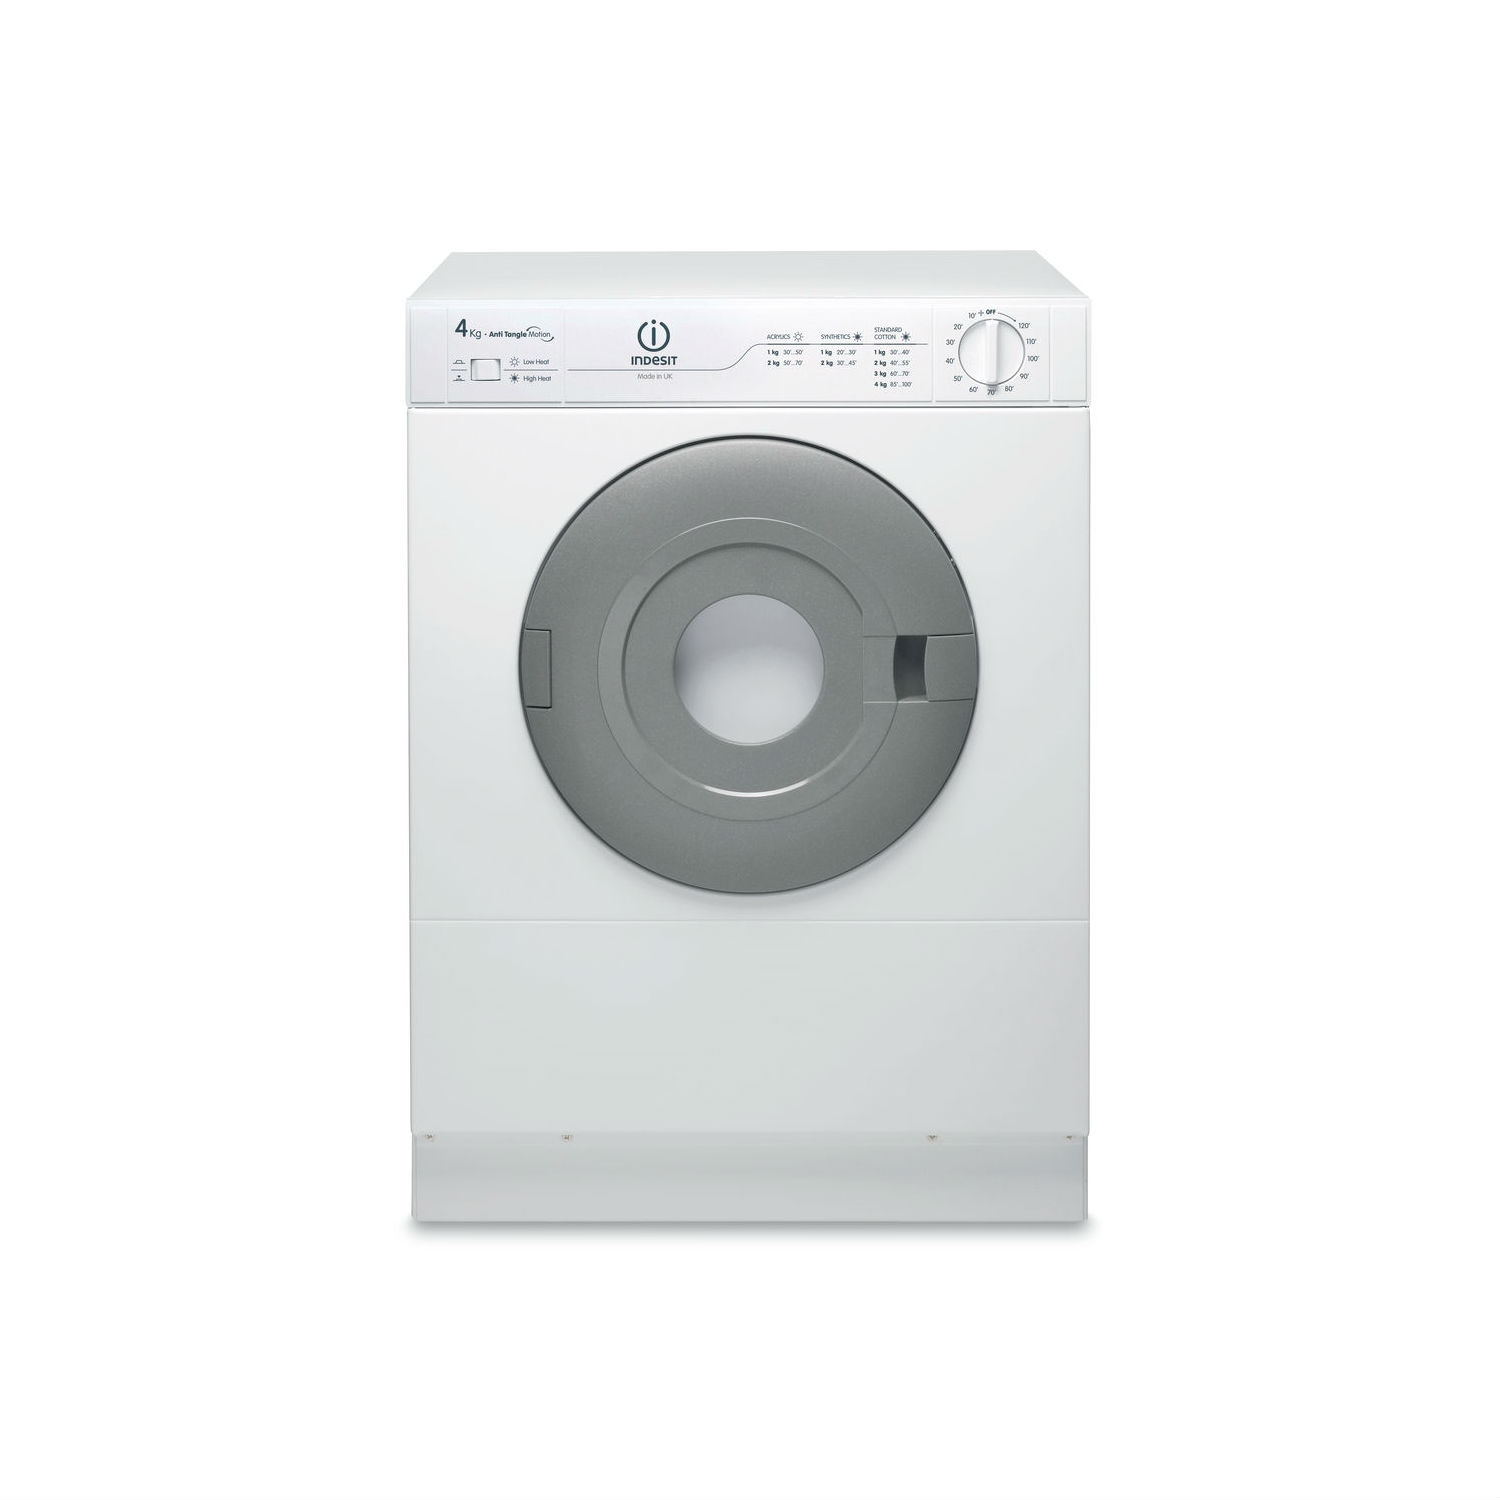 Indesit Refresh Option Vented Tumble Dryer - White - C Energy Rated - 0